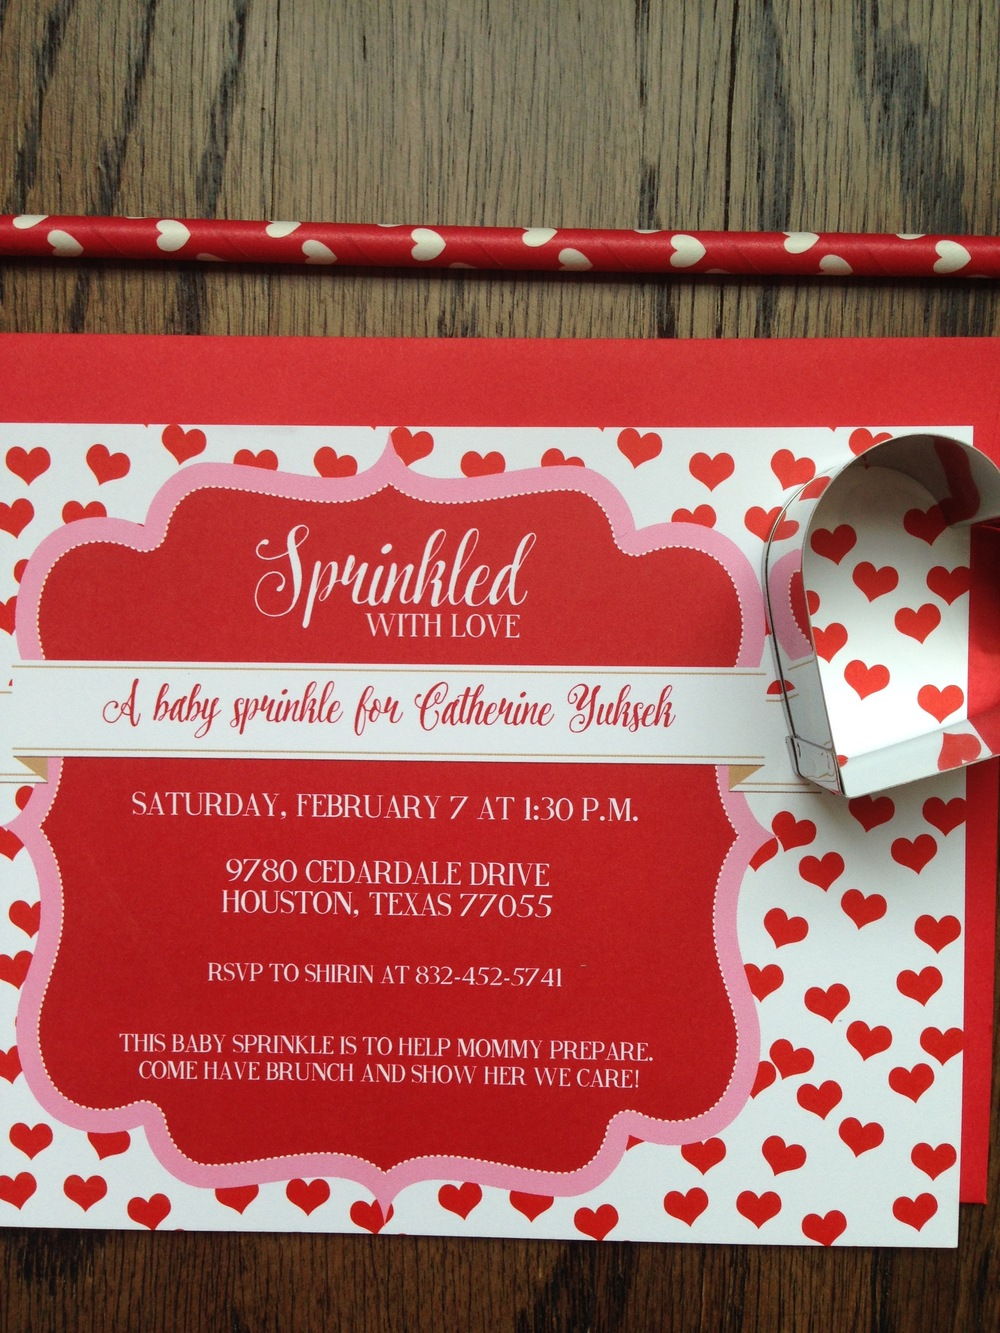 And this was a fun valentines themed baby shower invitation I did a few years ago!